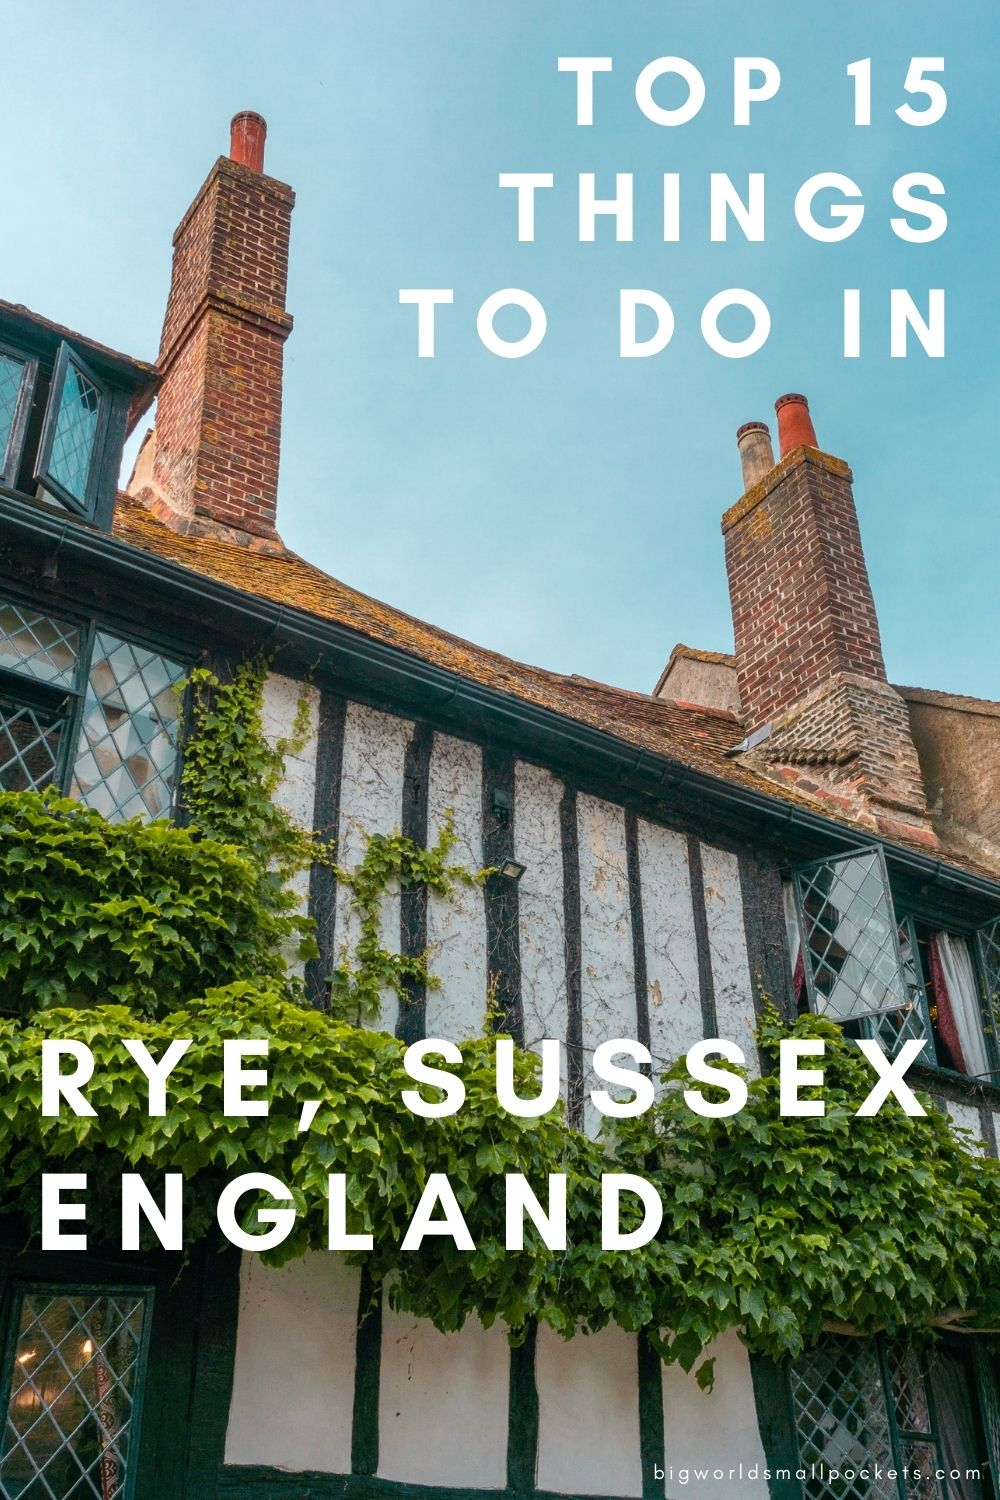 Top 15 Things To Do in Rye, Sussex, England